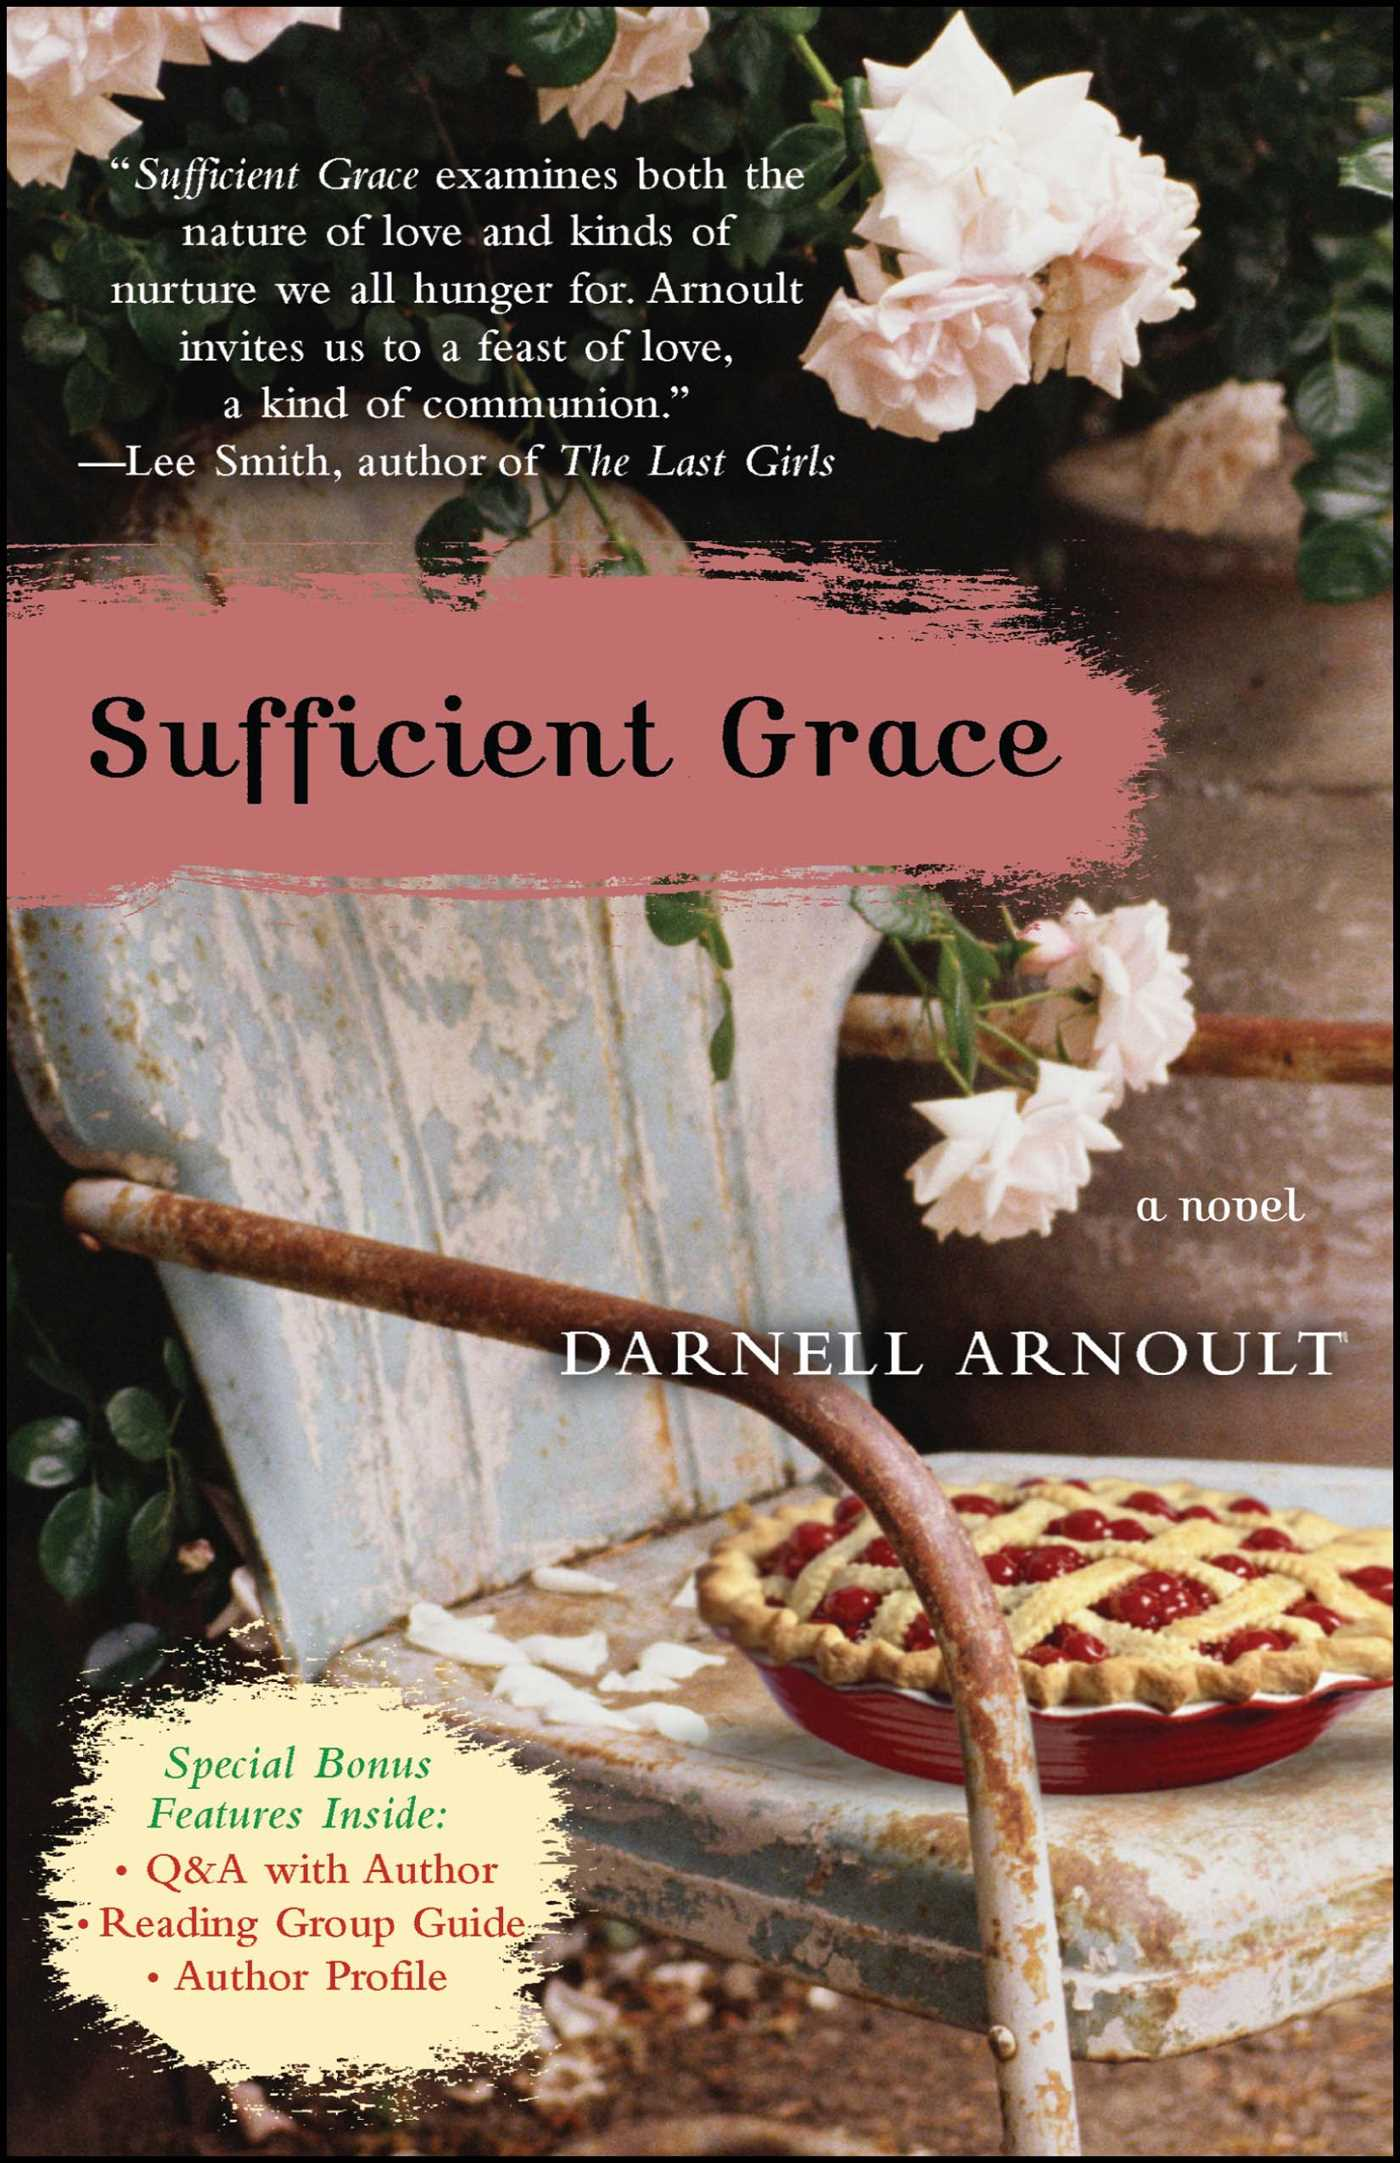 Sufficient grace 9781416534303 hr